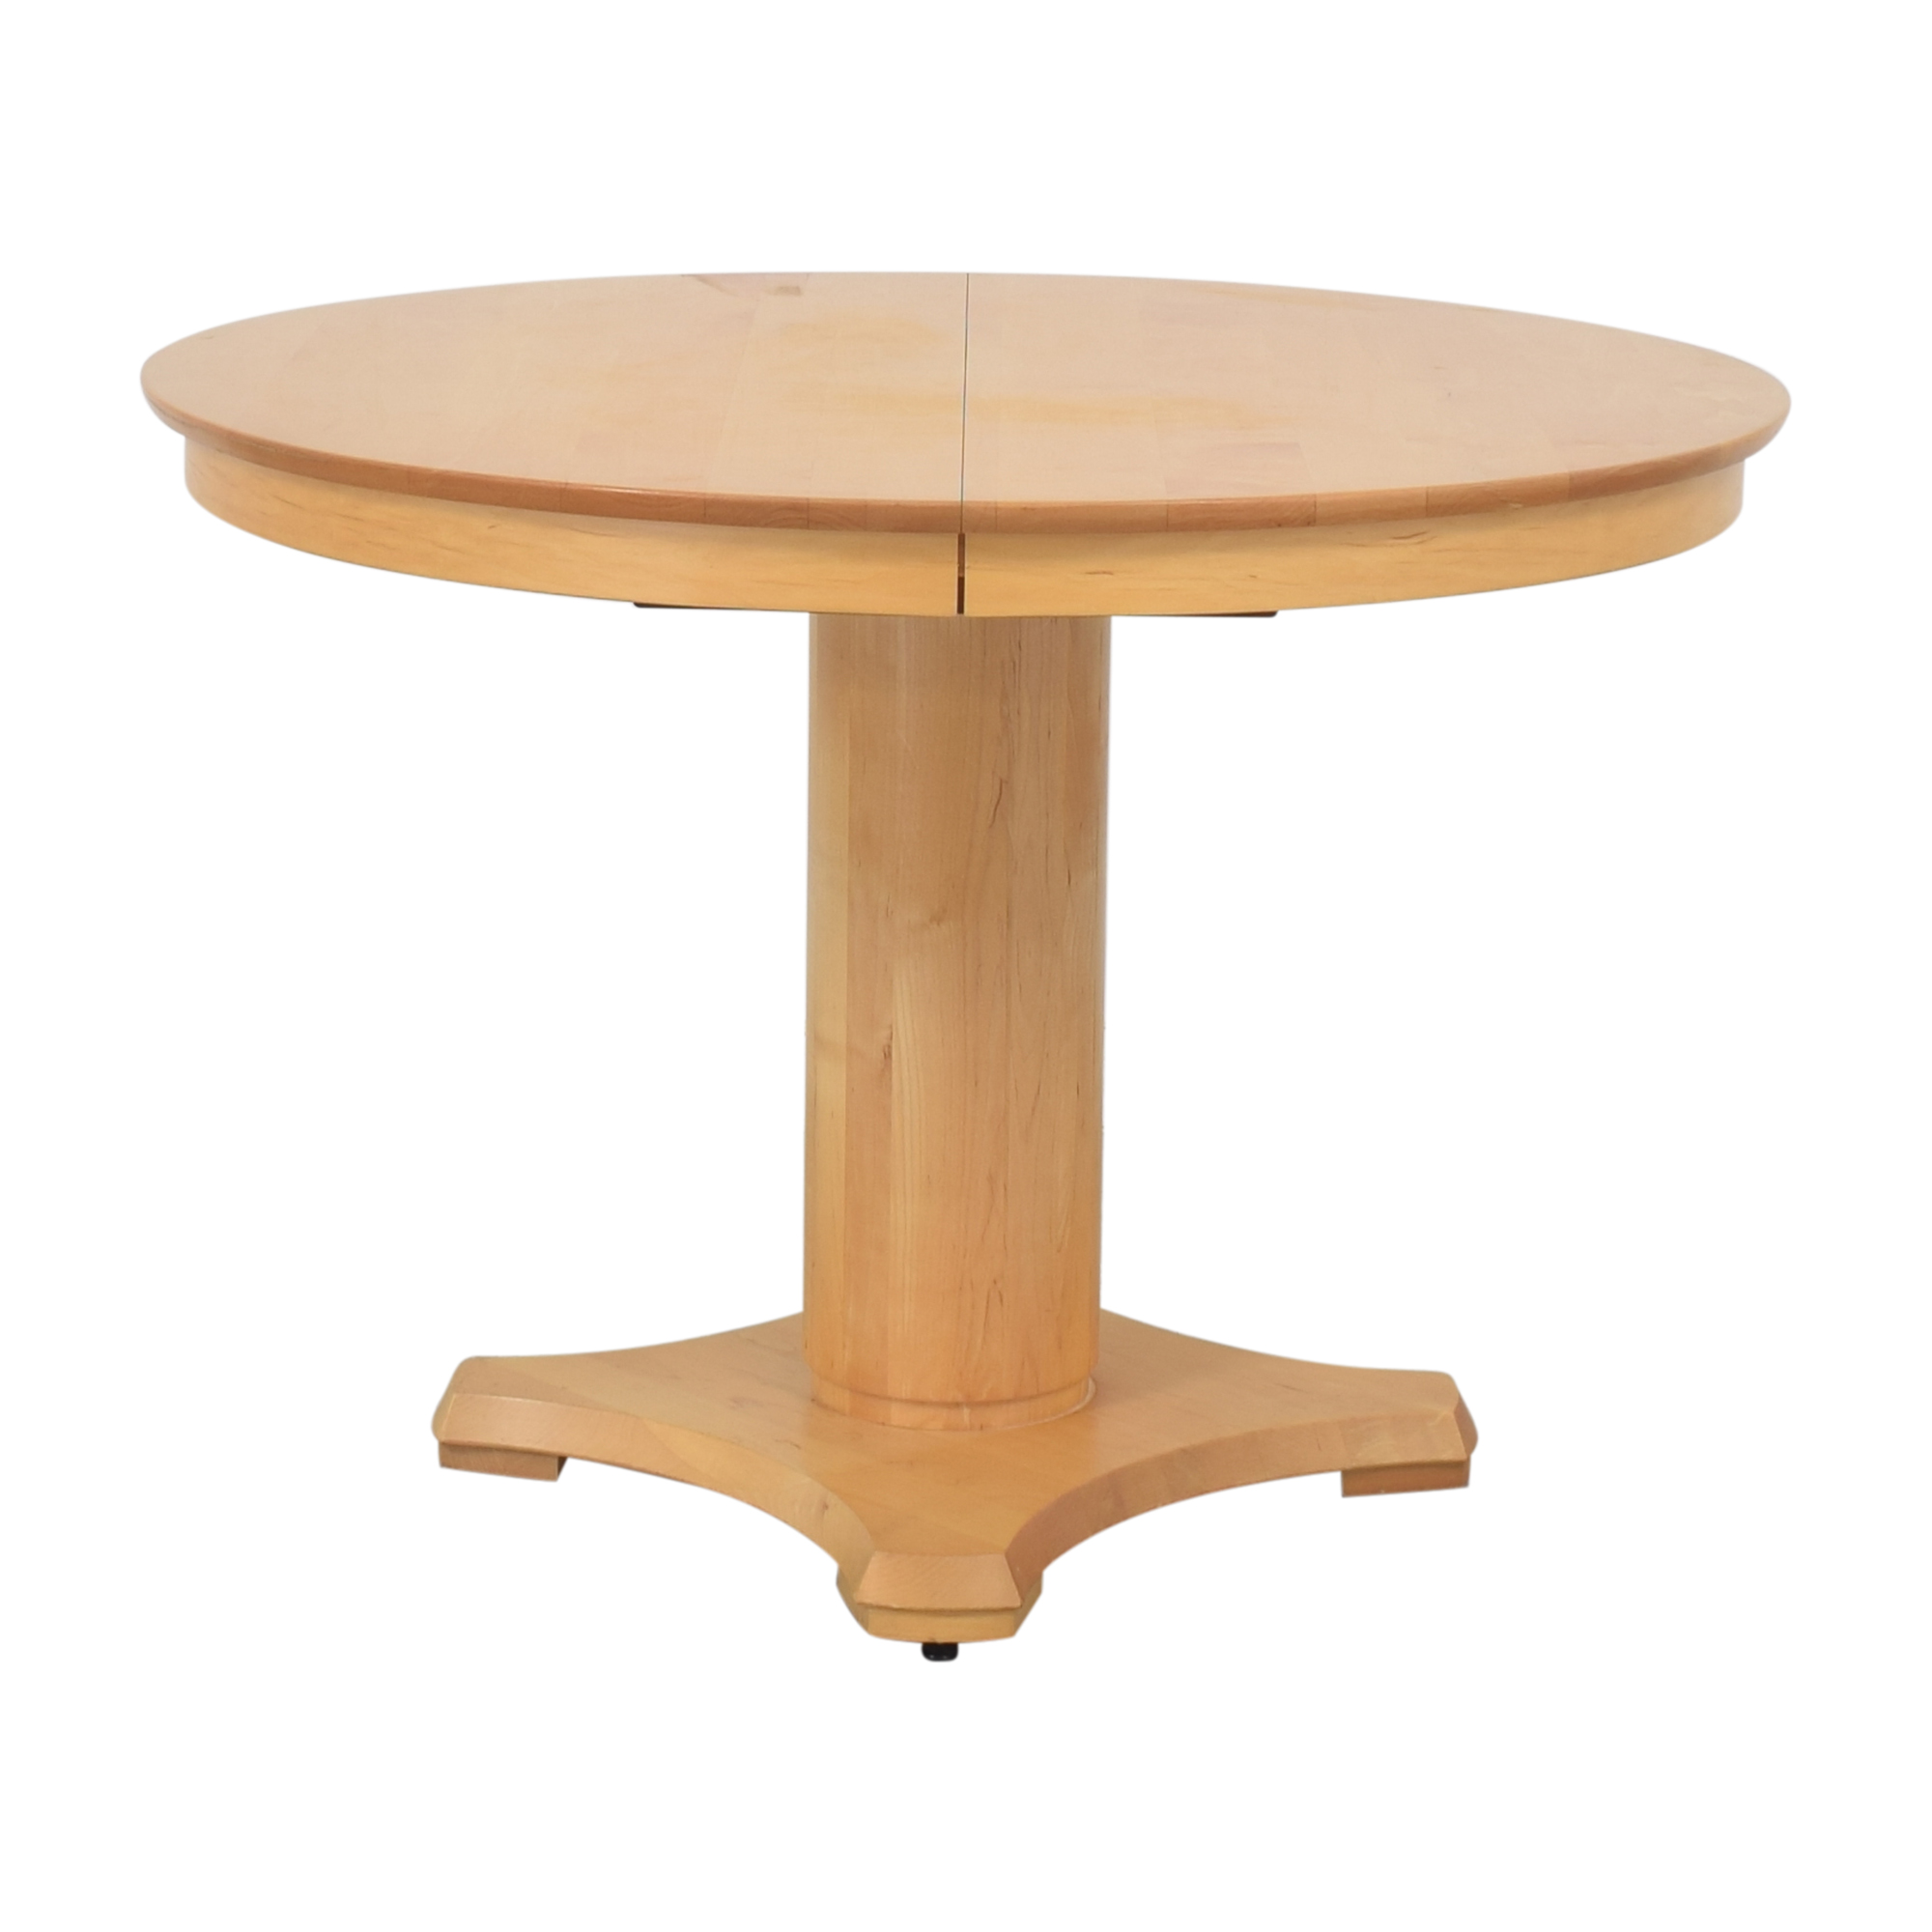 Crate & Barrel Crate & Barrel Dining Round Dinner Table Dinner Tables